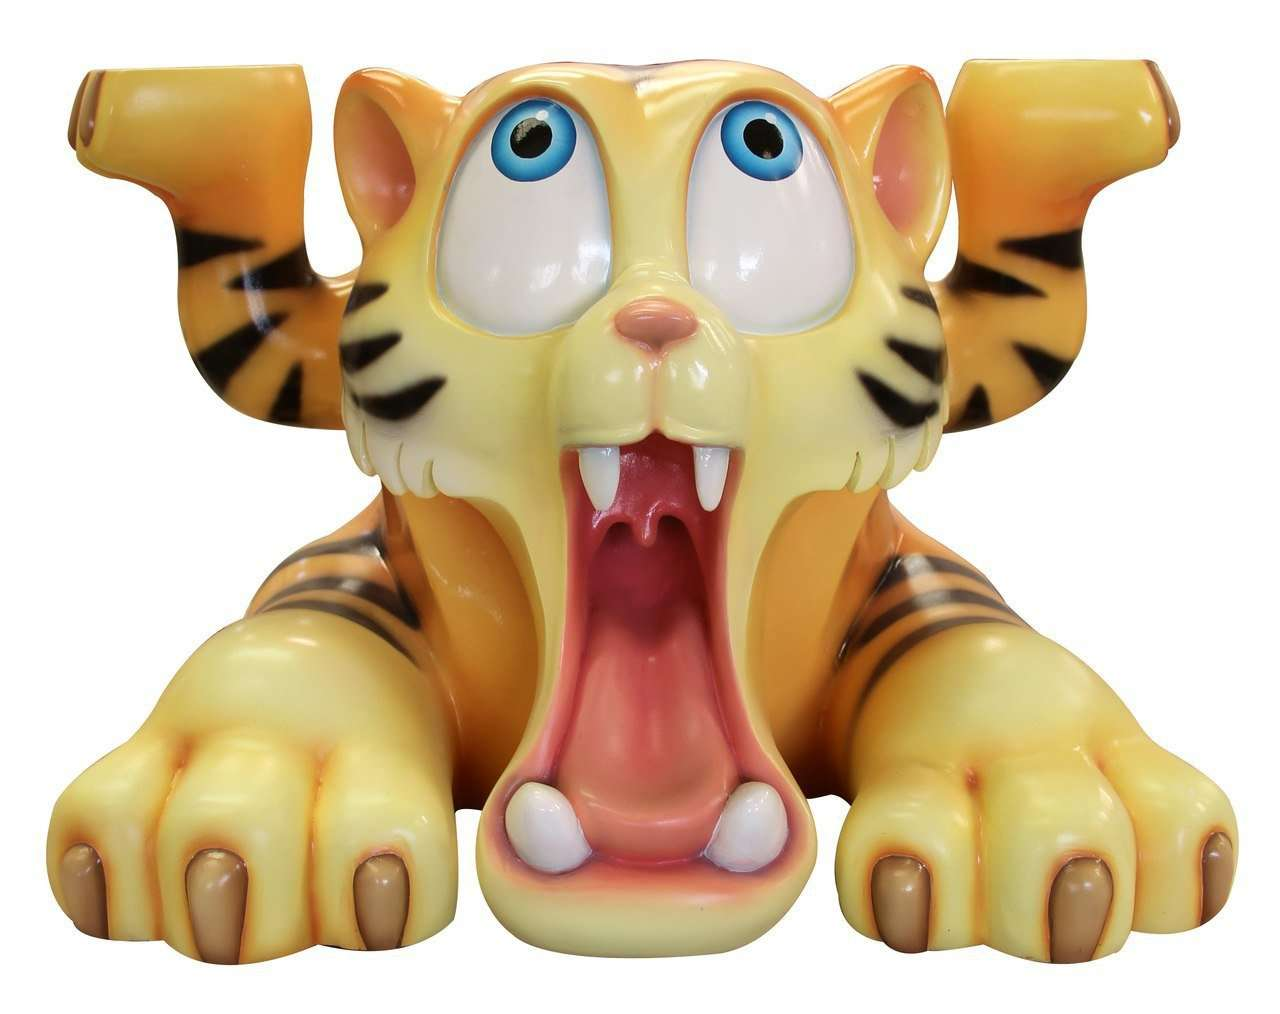 Comic Tiger Table Prop Life Size Decor Resin Statue - LM Treasures